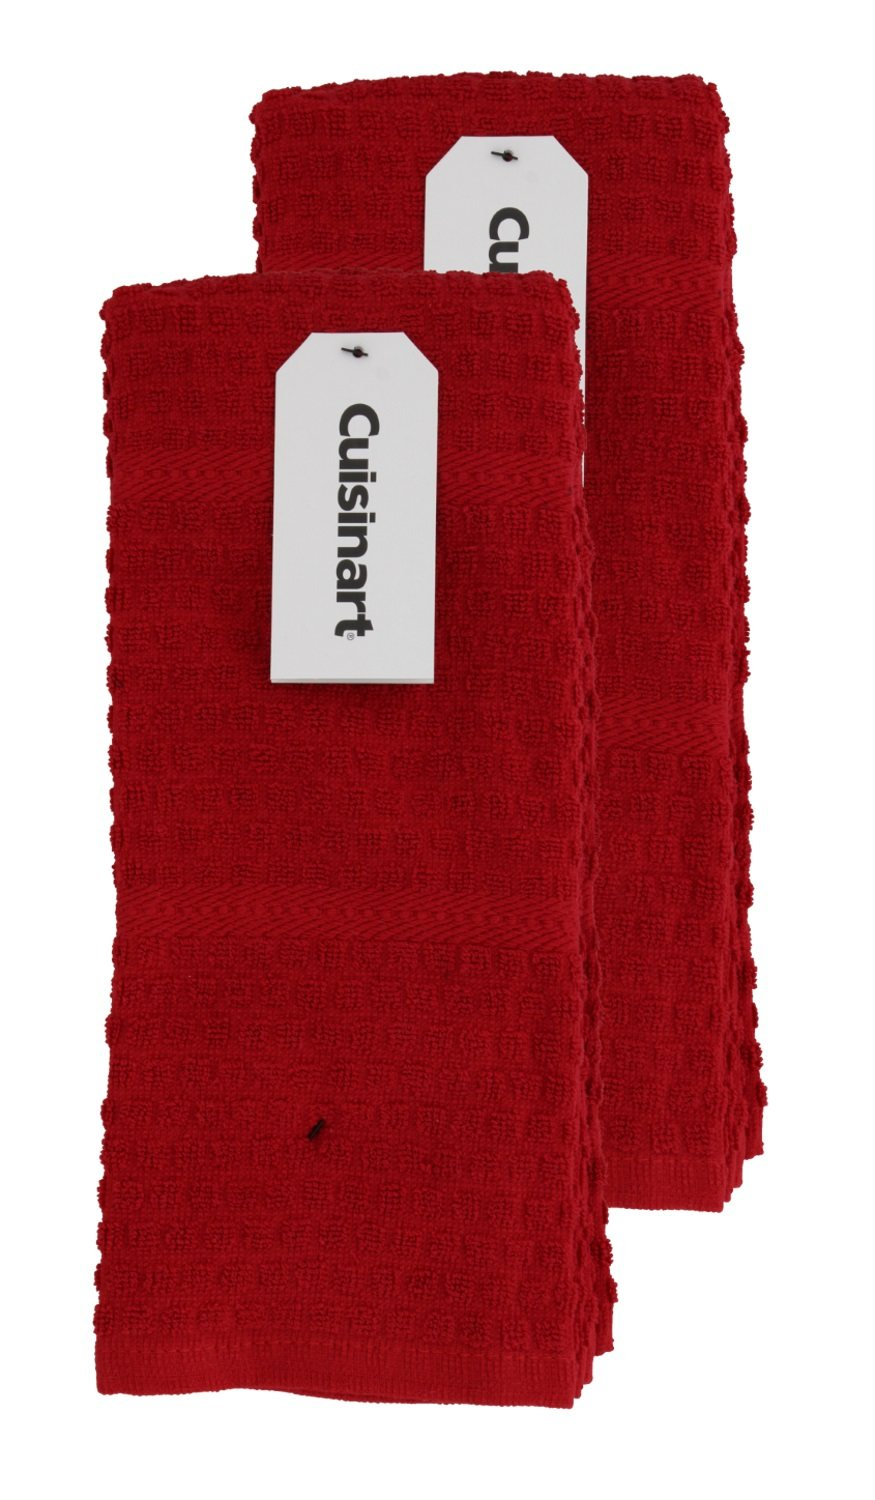 Cuisinart Kitchen, Hand and Dish Towels Premium 100% Cotton Terry � Soft, Absorbent, Quick... by Cuisinart